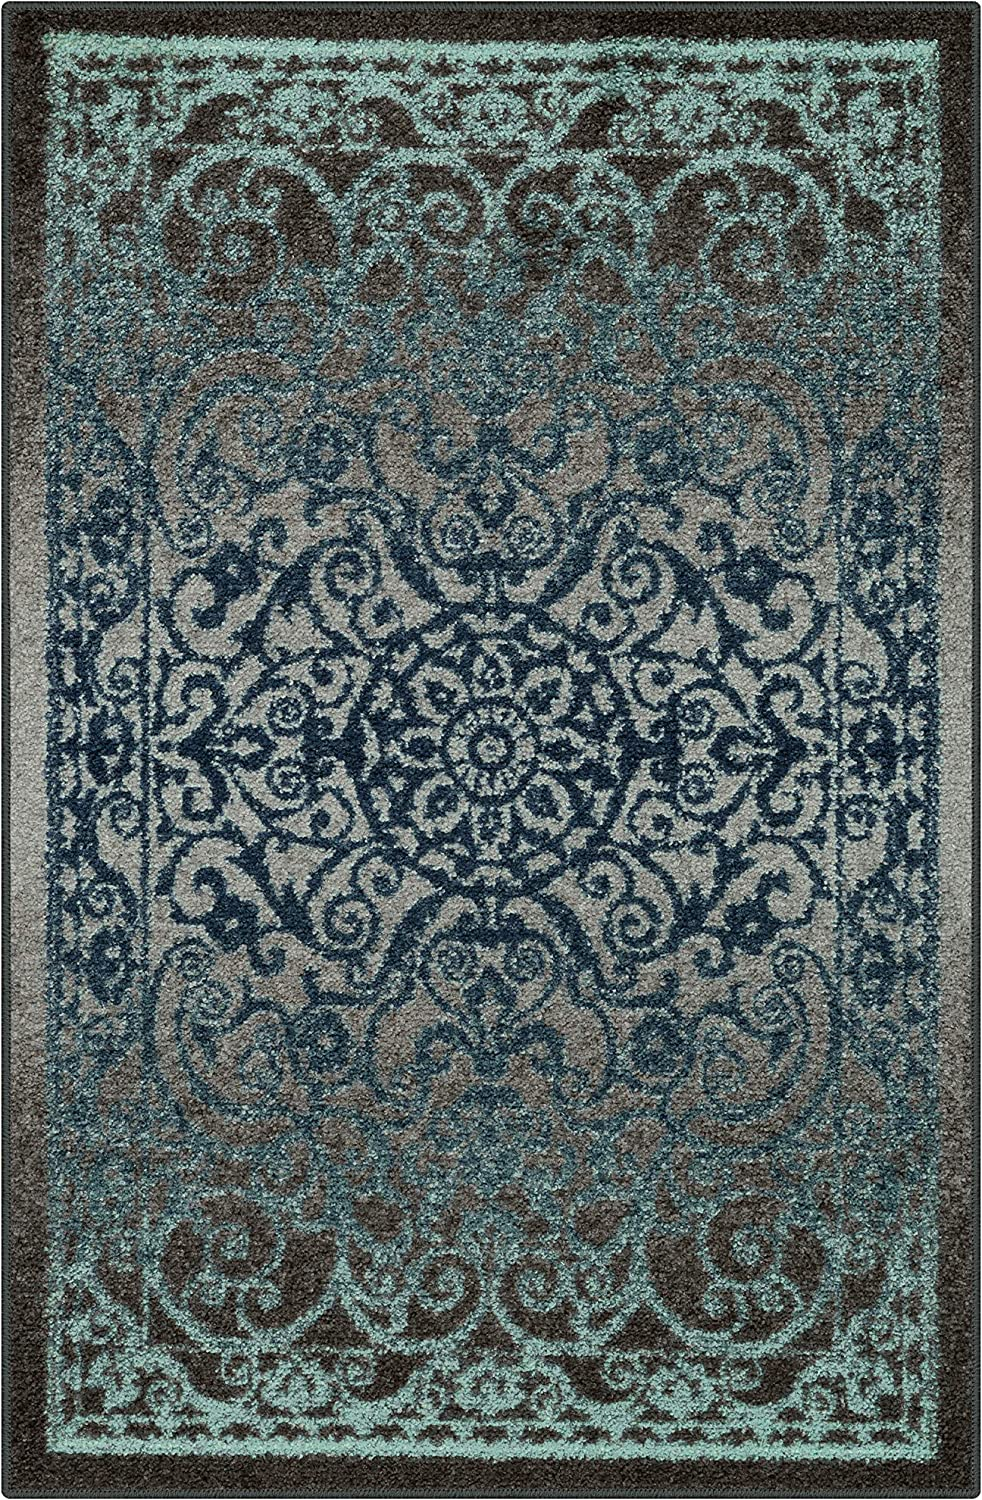 Maples Rugs Pelham Vintage Kitchen Rugs Non Skid Accent Area Carpet [Made in USA], 2'6 x 3'10, Charcoal/Radiant Blue